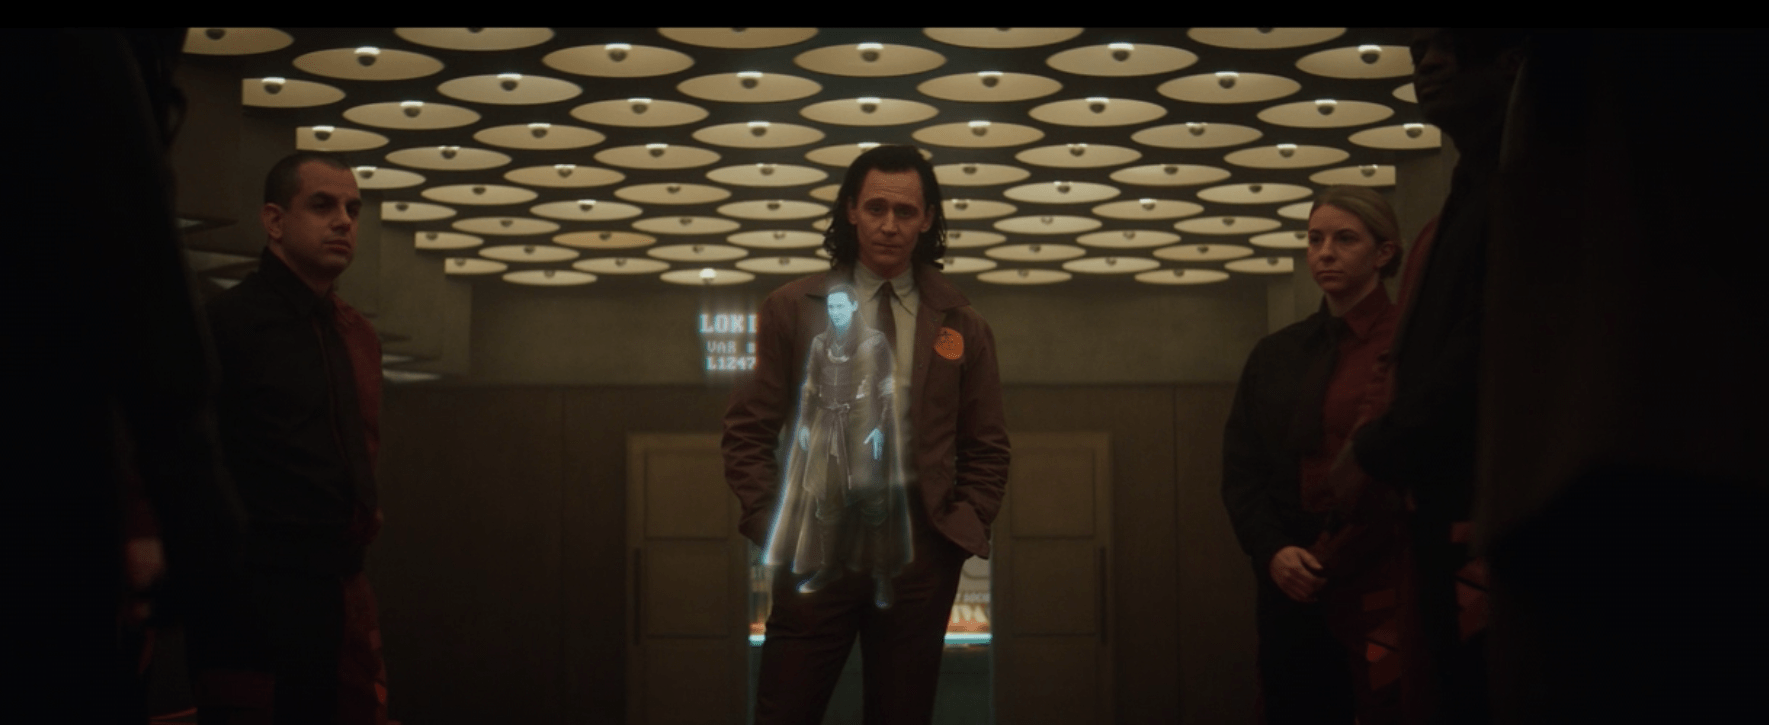 Section 1 image for Marvel's Loki and the Process-driven World of the TVA – episode 2